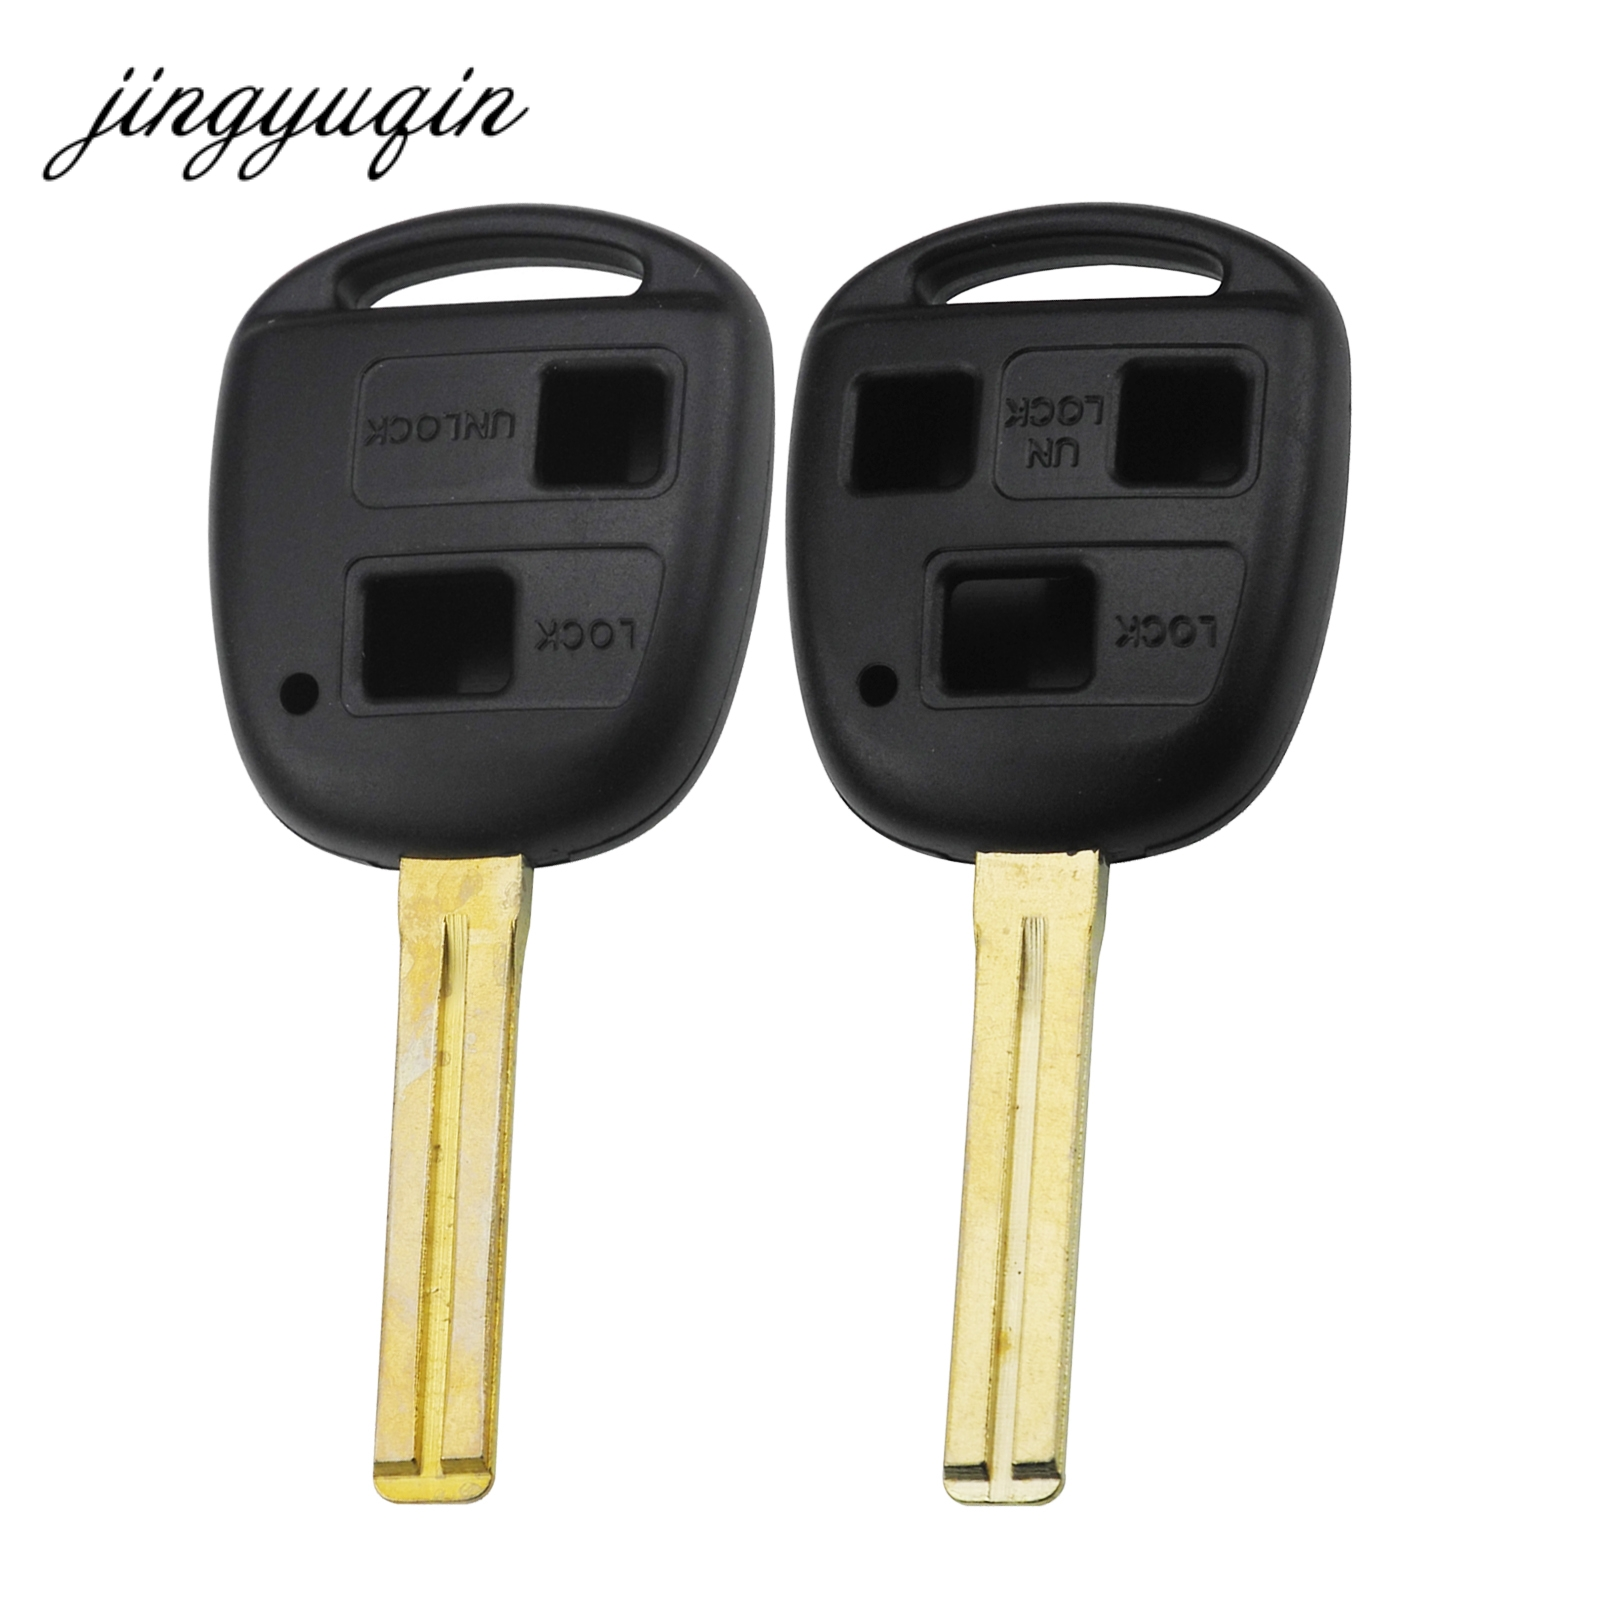 jingyuqin Remote Key Shell Replacement for Toyota Land Cruiser 2 Button Uncut Key Fob Case Blade TOY48 цена